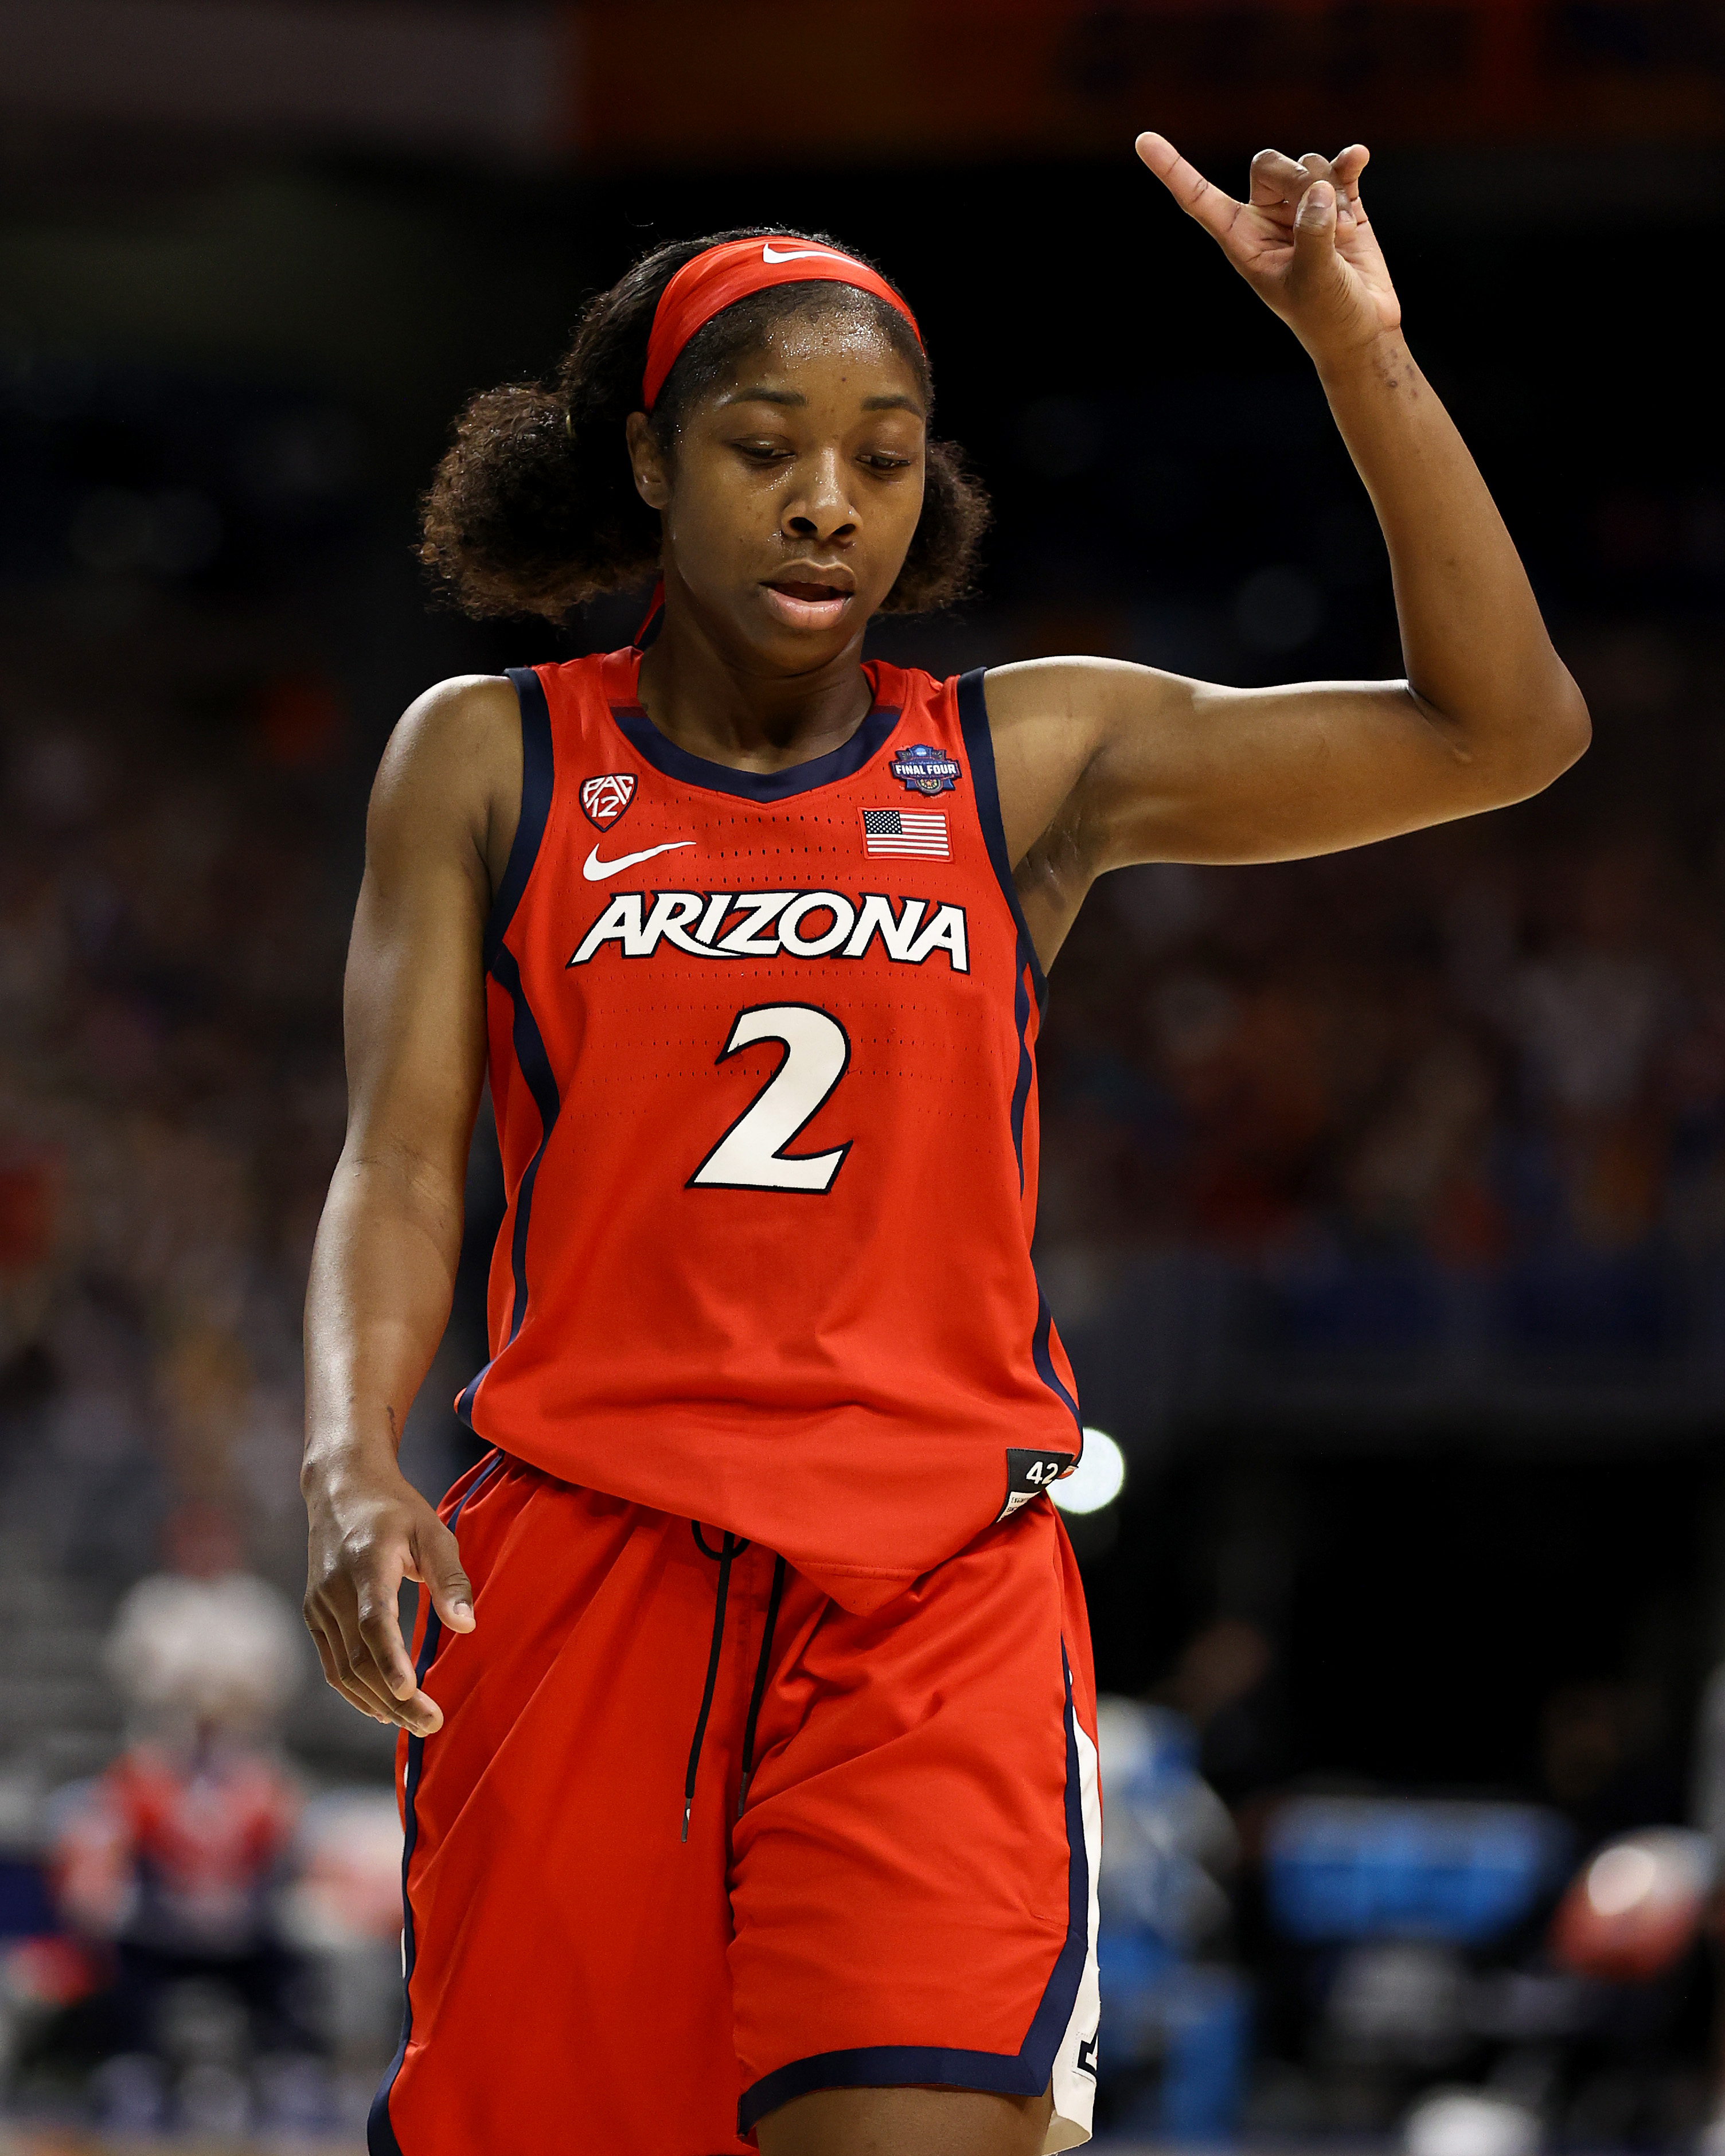 Aari McDonald of the Arizona Wildcats acknowledges her foul during the National Championship game of the 2021 NCAA Women's Basketball Tournament at the Alamodome on April 04, 2021 in San Antonio, Texas. The Stanford Cardinal defeated the Arizona Wildcats 54-53 to win the national title.